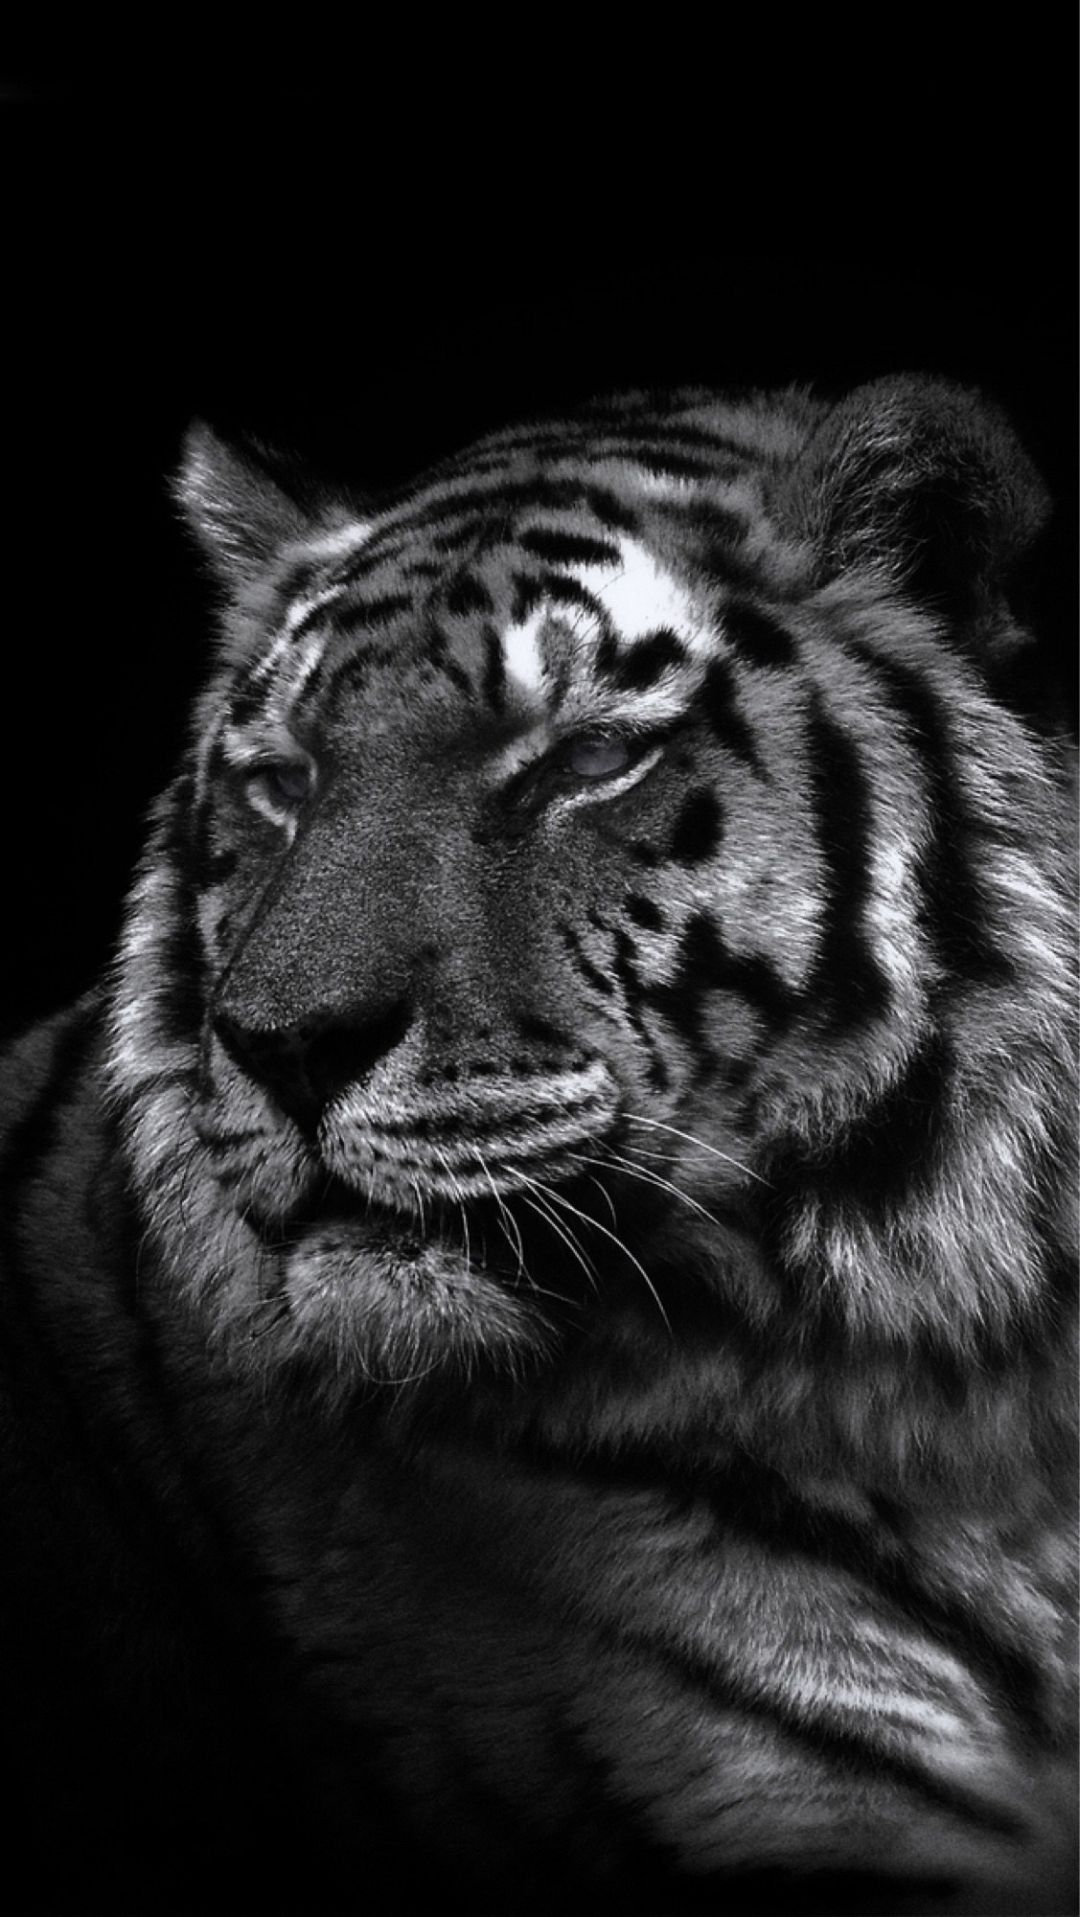 Cool Animal iPhone wallpaper size